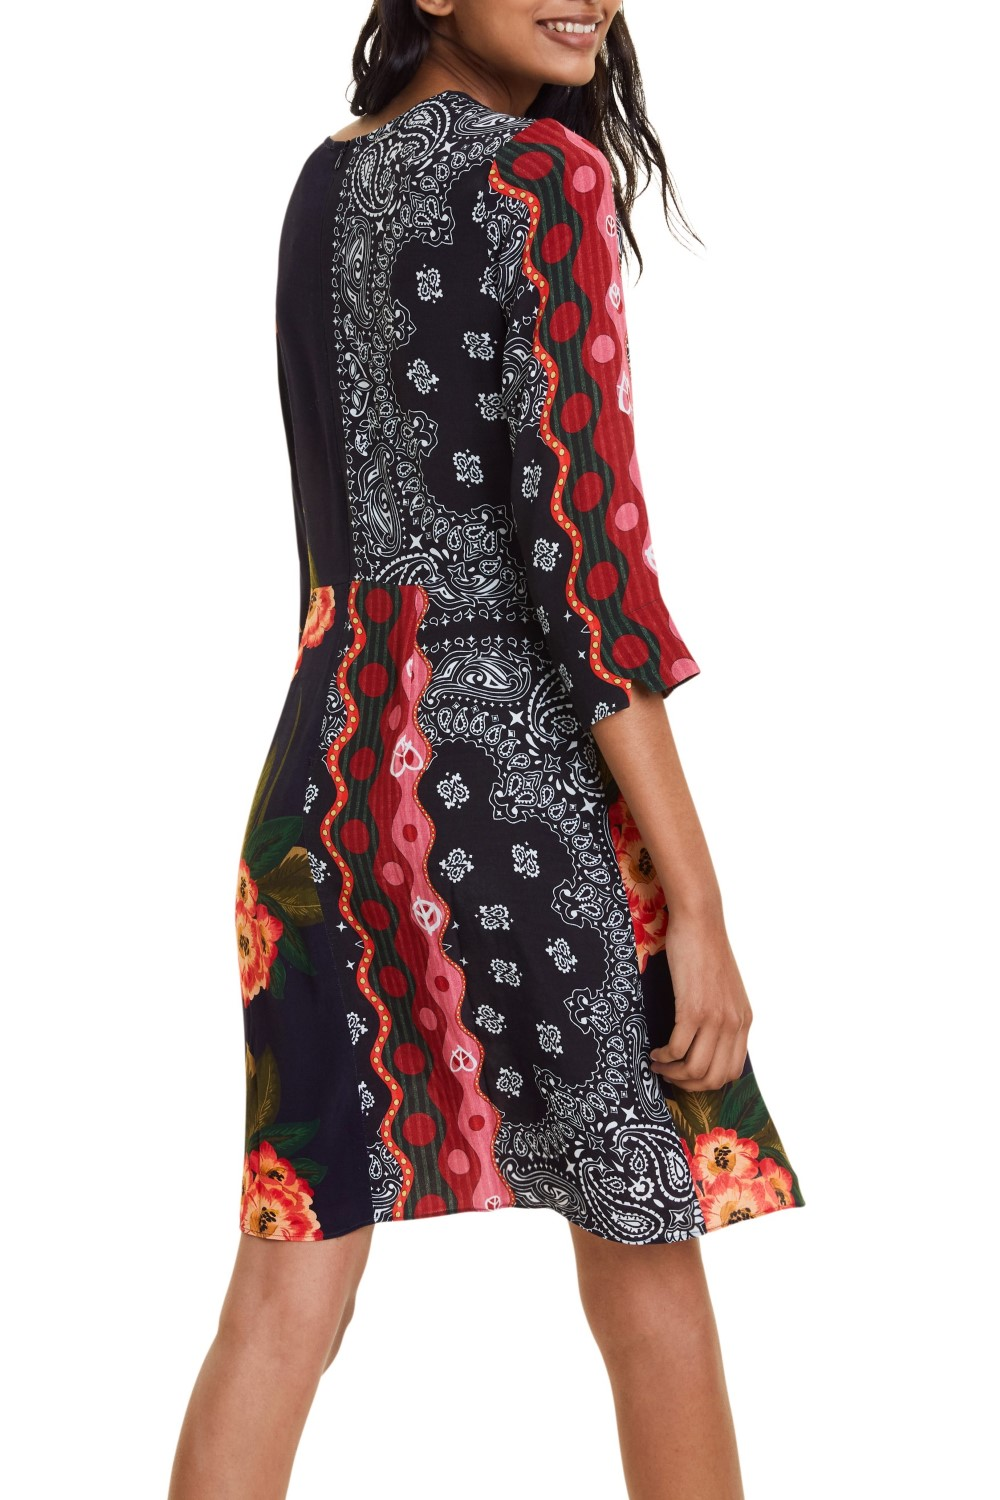 Desigual multicolor dress Vest Dana